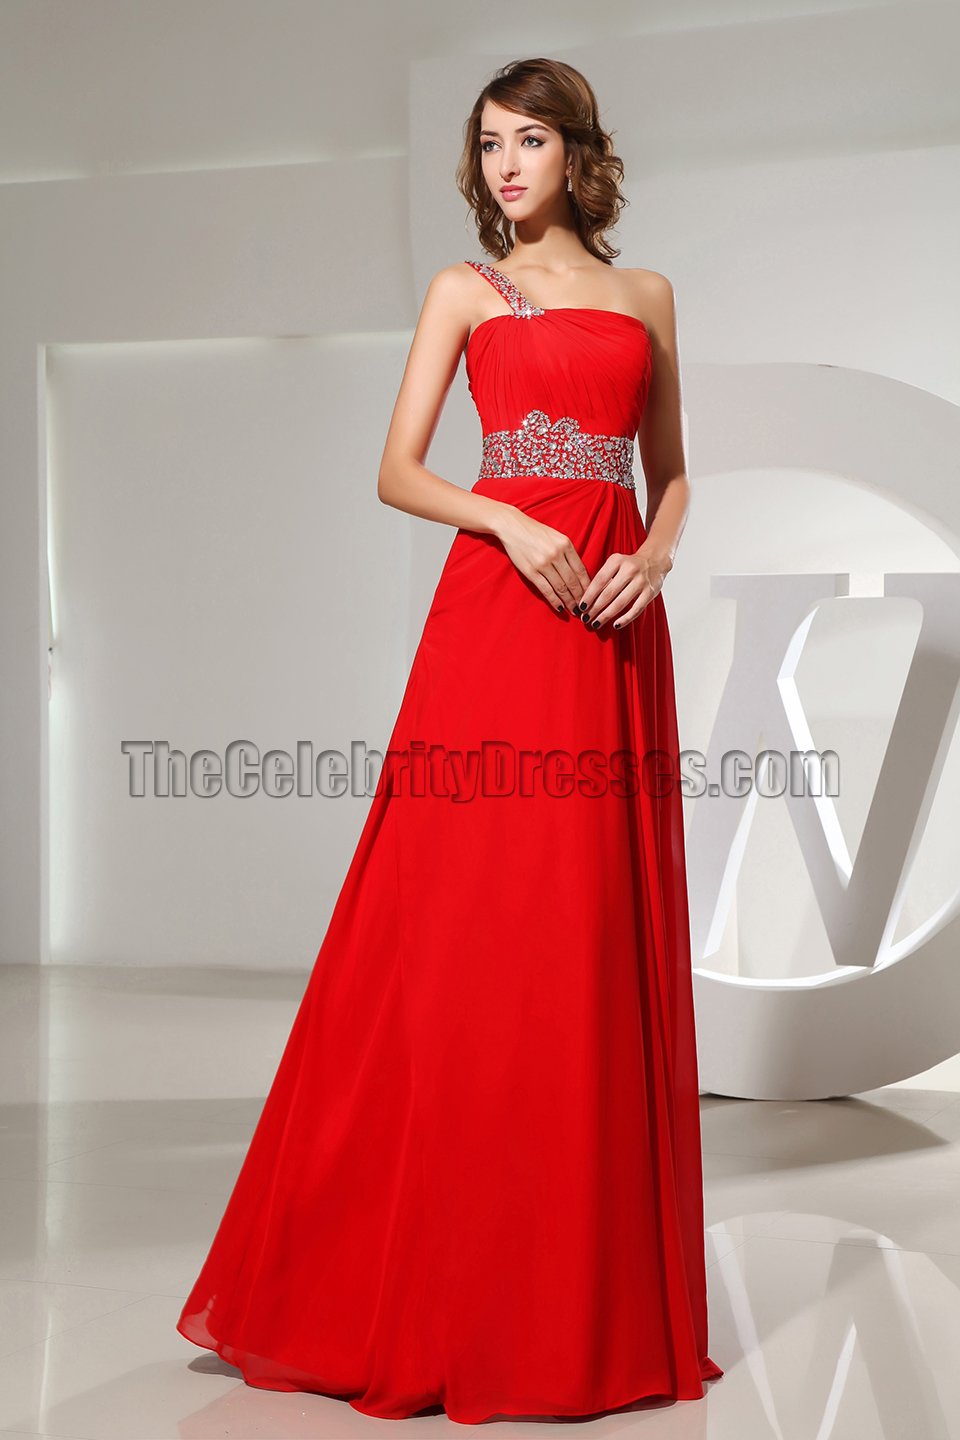 Images of Red One Shoulder Prom Dress - Watch Out, There's a ...